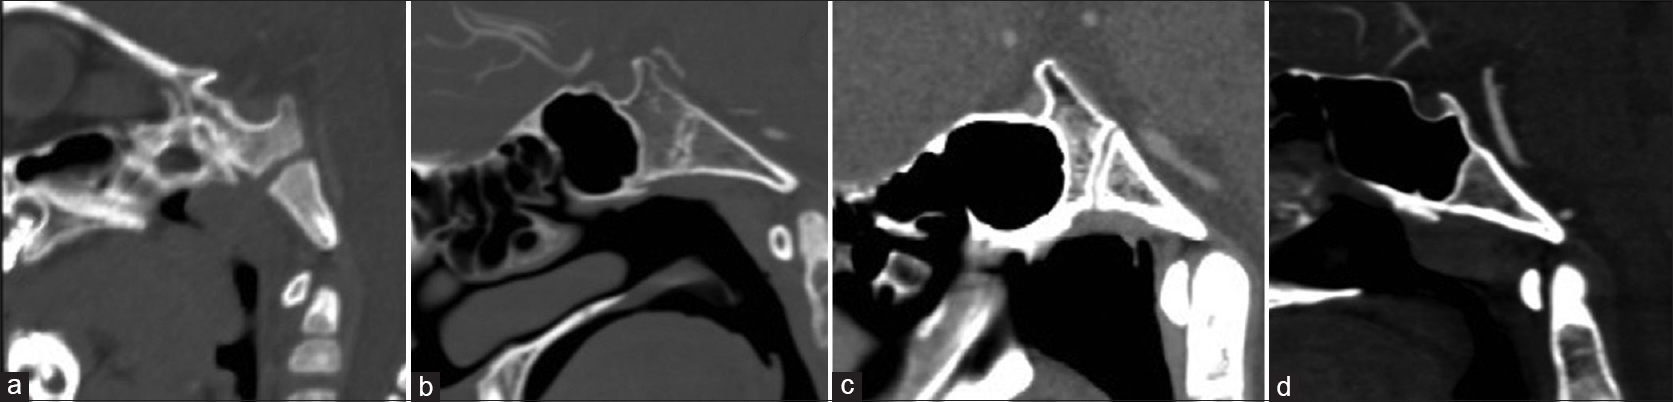 Figure 6: (a-d): Mid sagittal plane CT images show types of sphenoid sinus pneumatization. (a) No pneumatization (b) pre-sellar (c) sellar and (d) post-sellar types